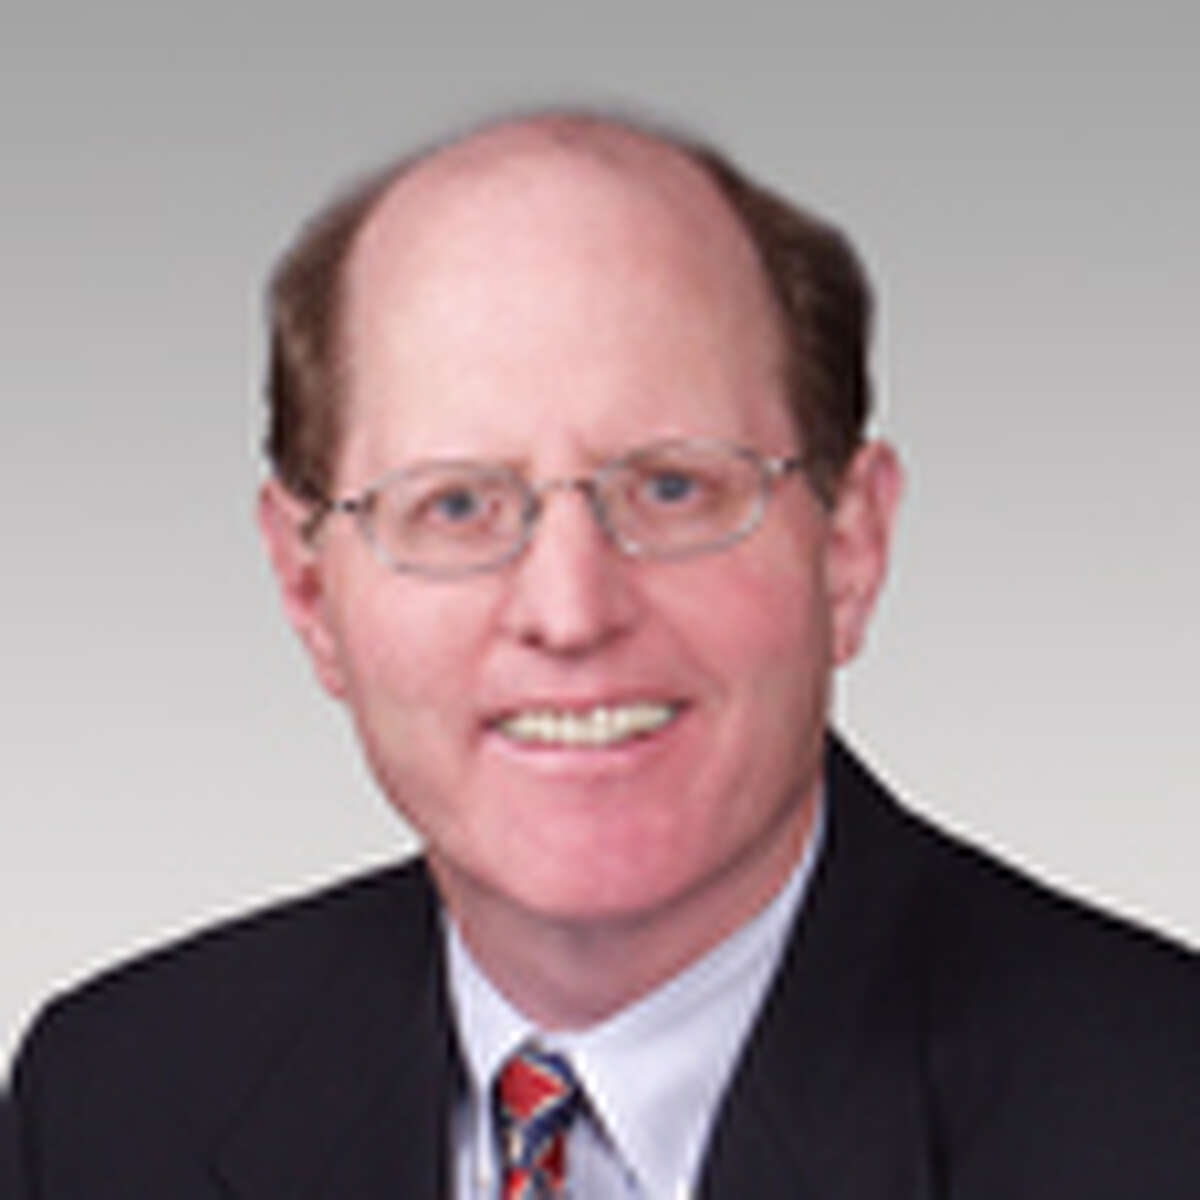 Michael Abbott, an employment lawyer who specializes in employee benefits at Gardere in Houston.